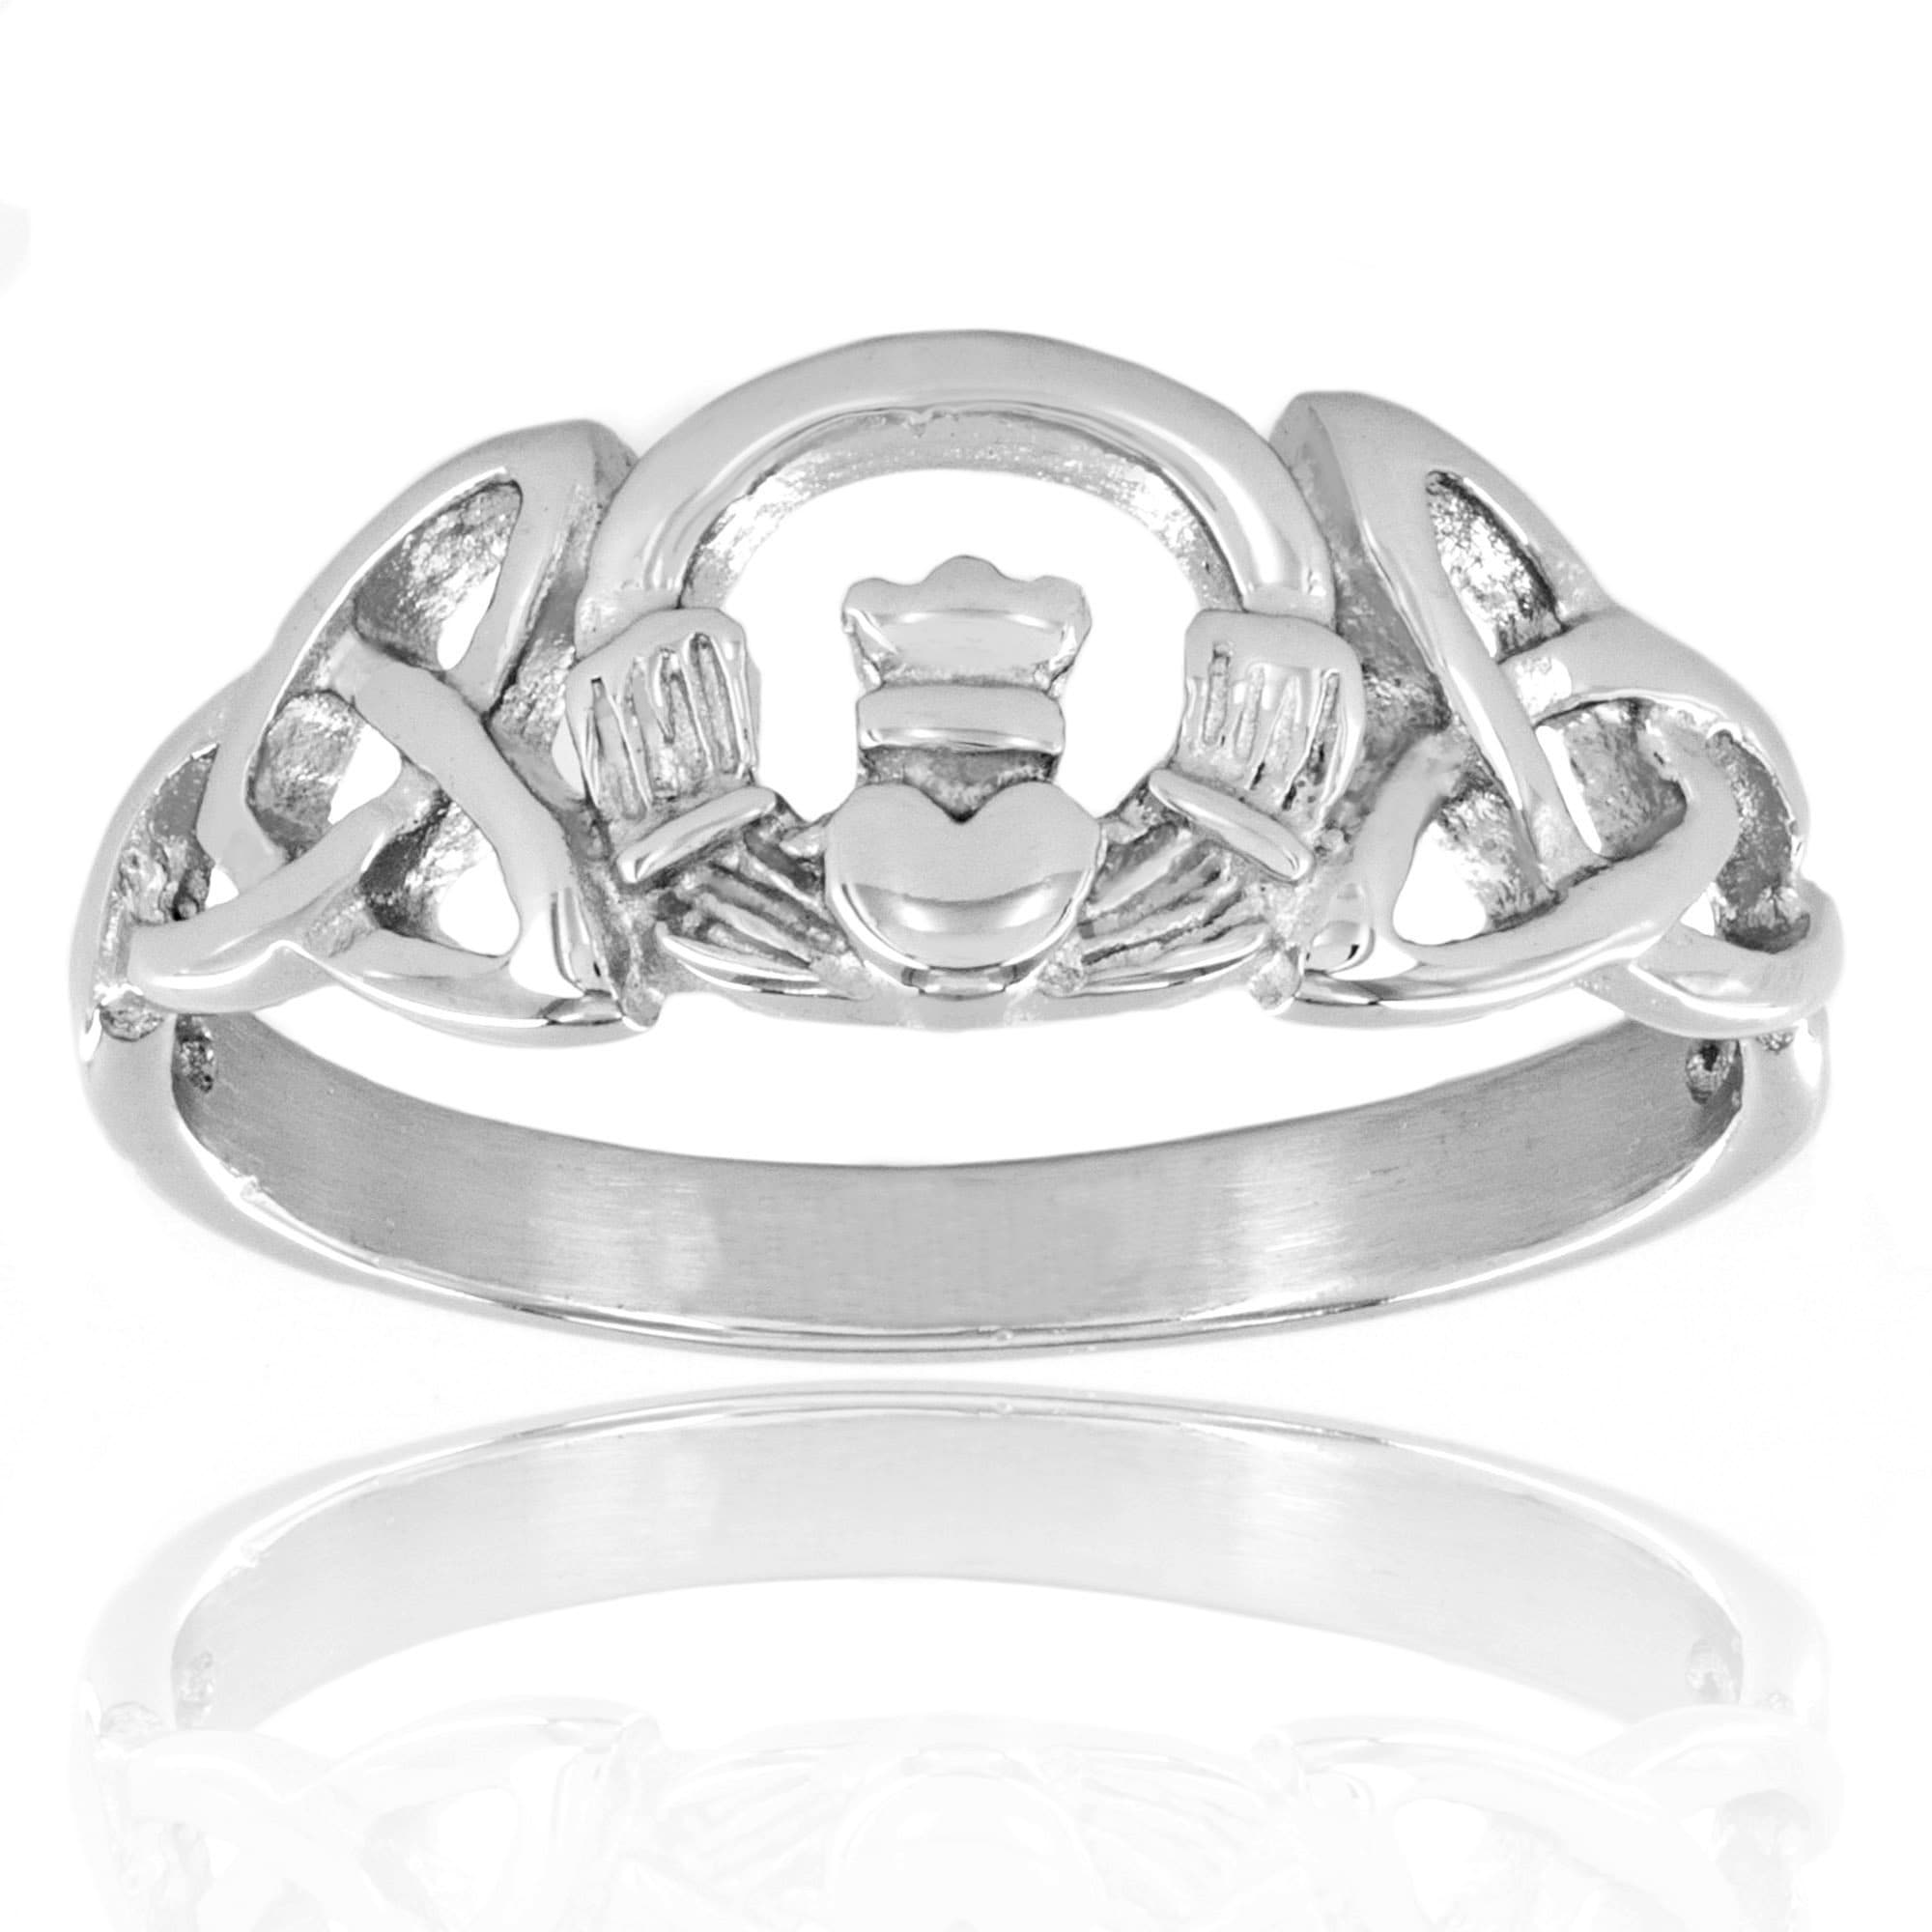 jewelry rings ring gold with collection livia silver engagement trinity diamond celtic white irish knots